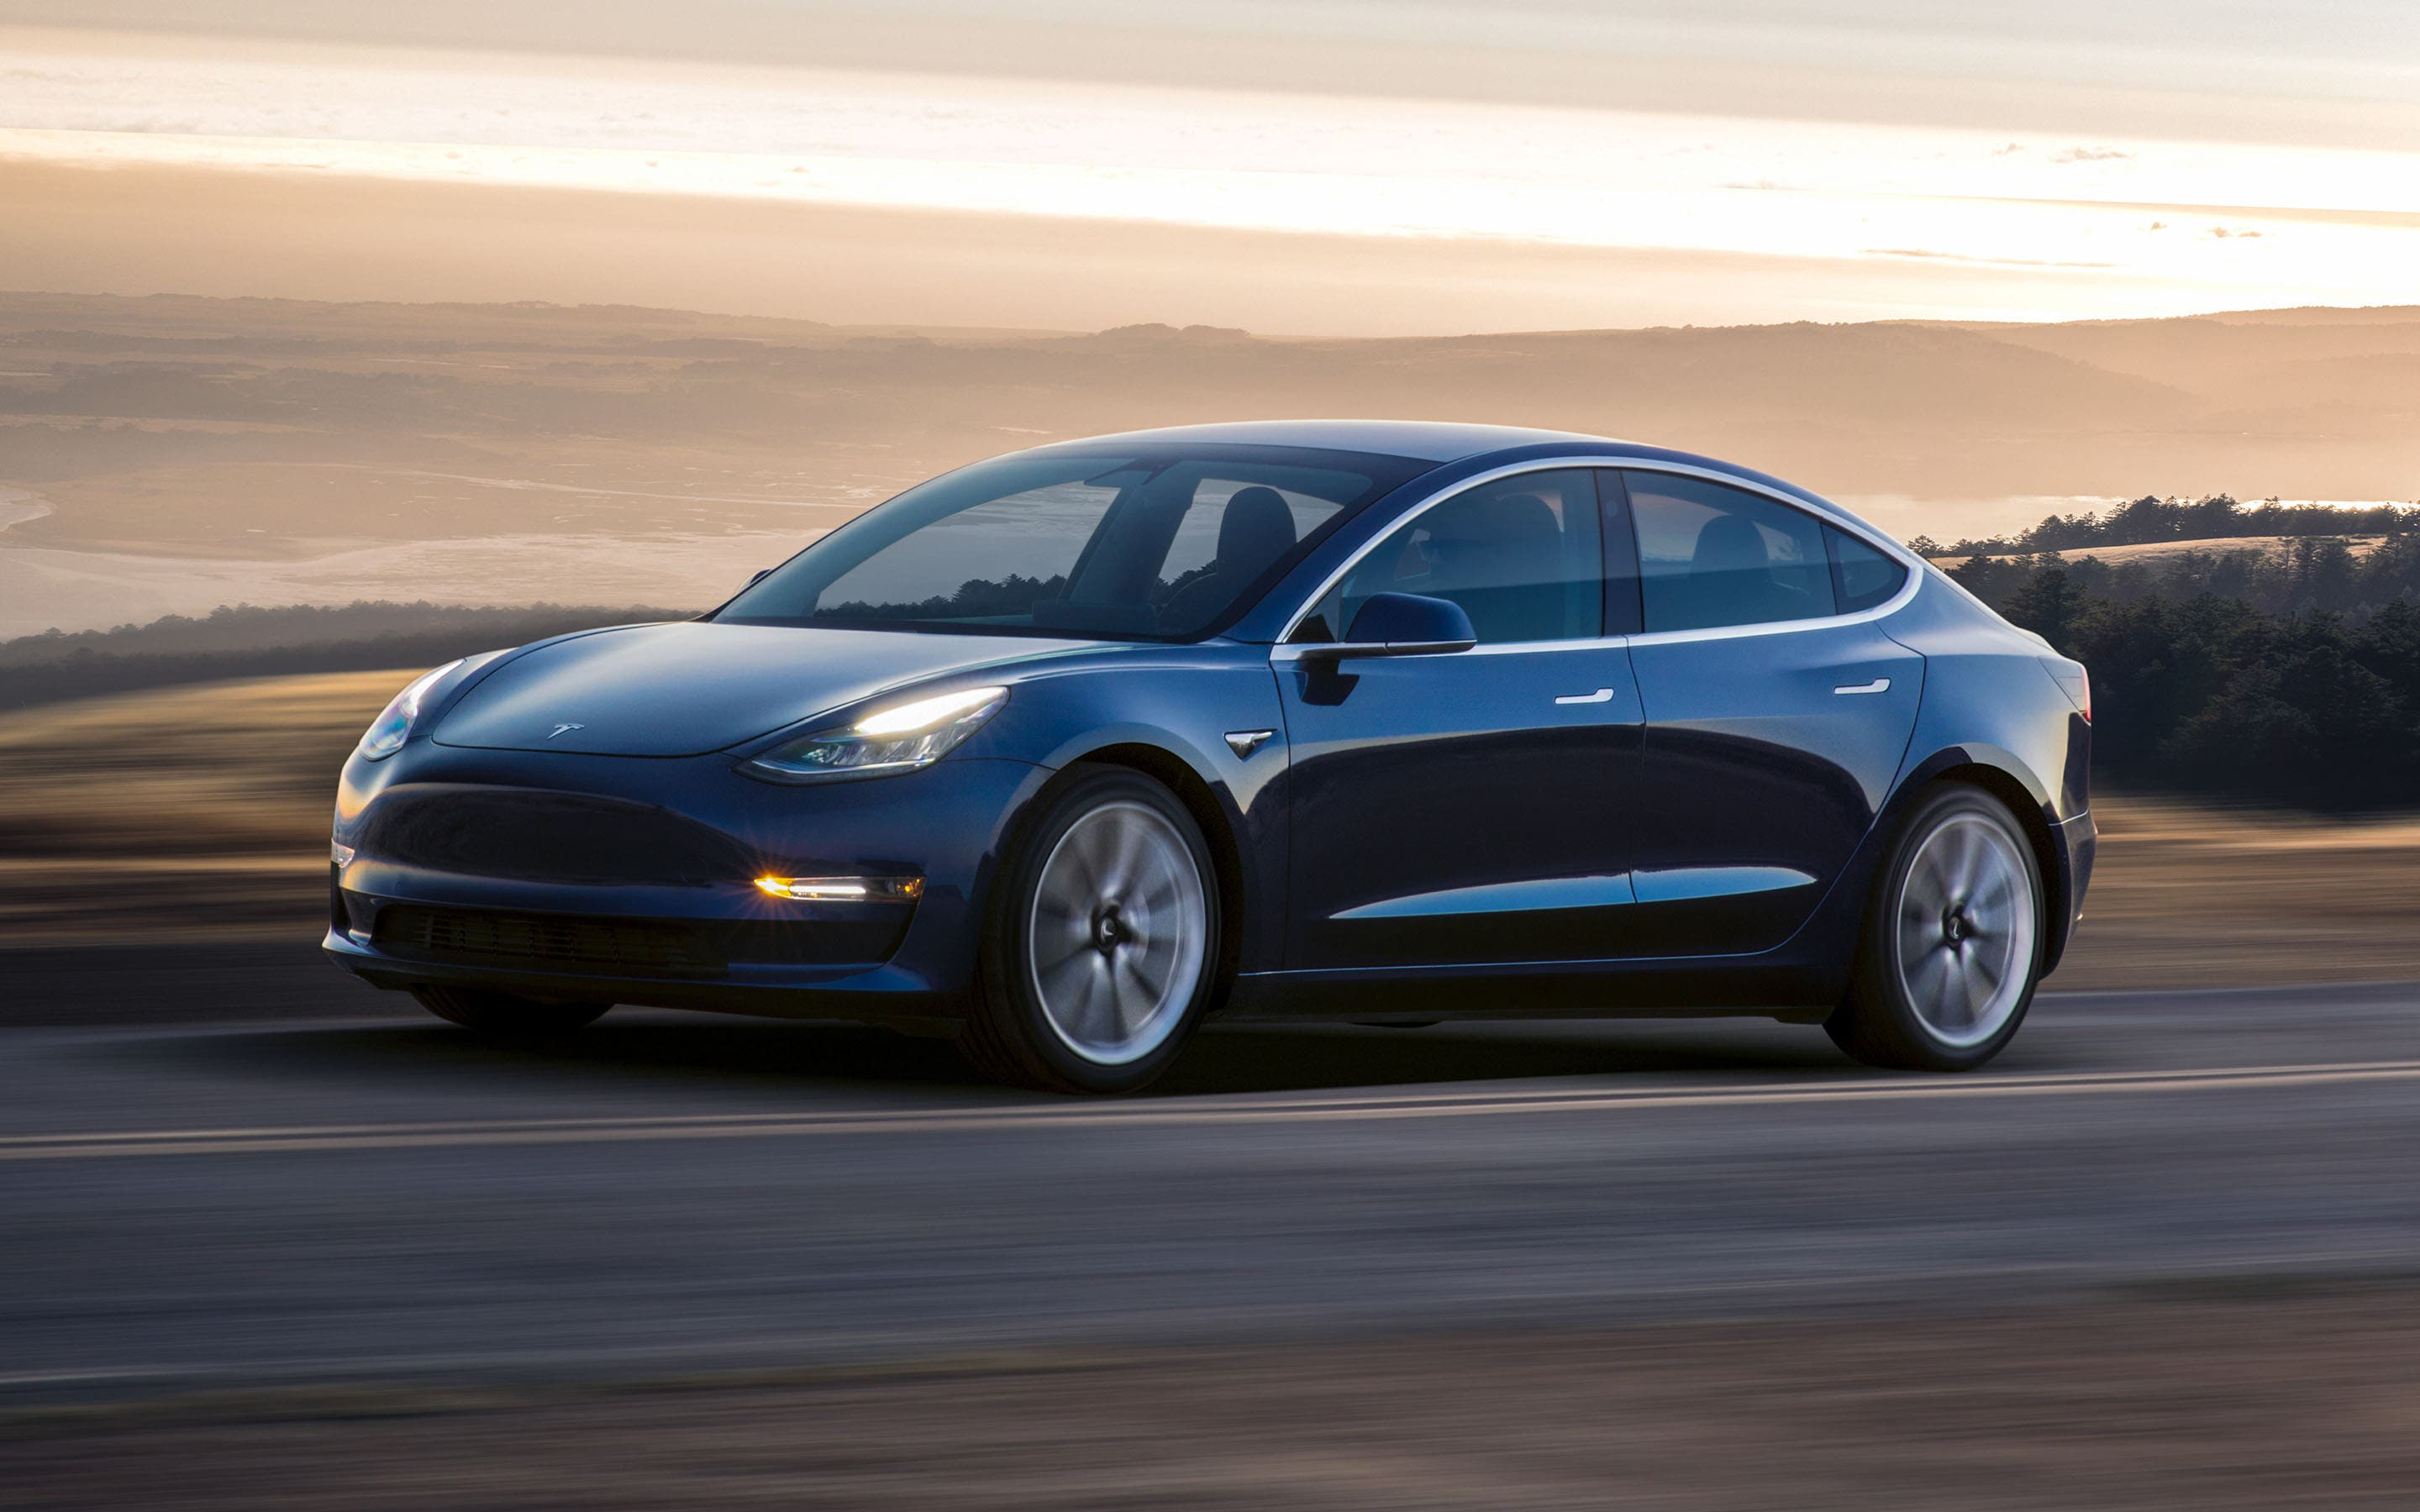 0 60 Mph As Far Acceleration An Extremely Important Metric For Some People And A Negligible Others The 44 000 Tesla Model 3 Long Range